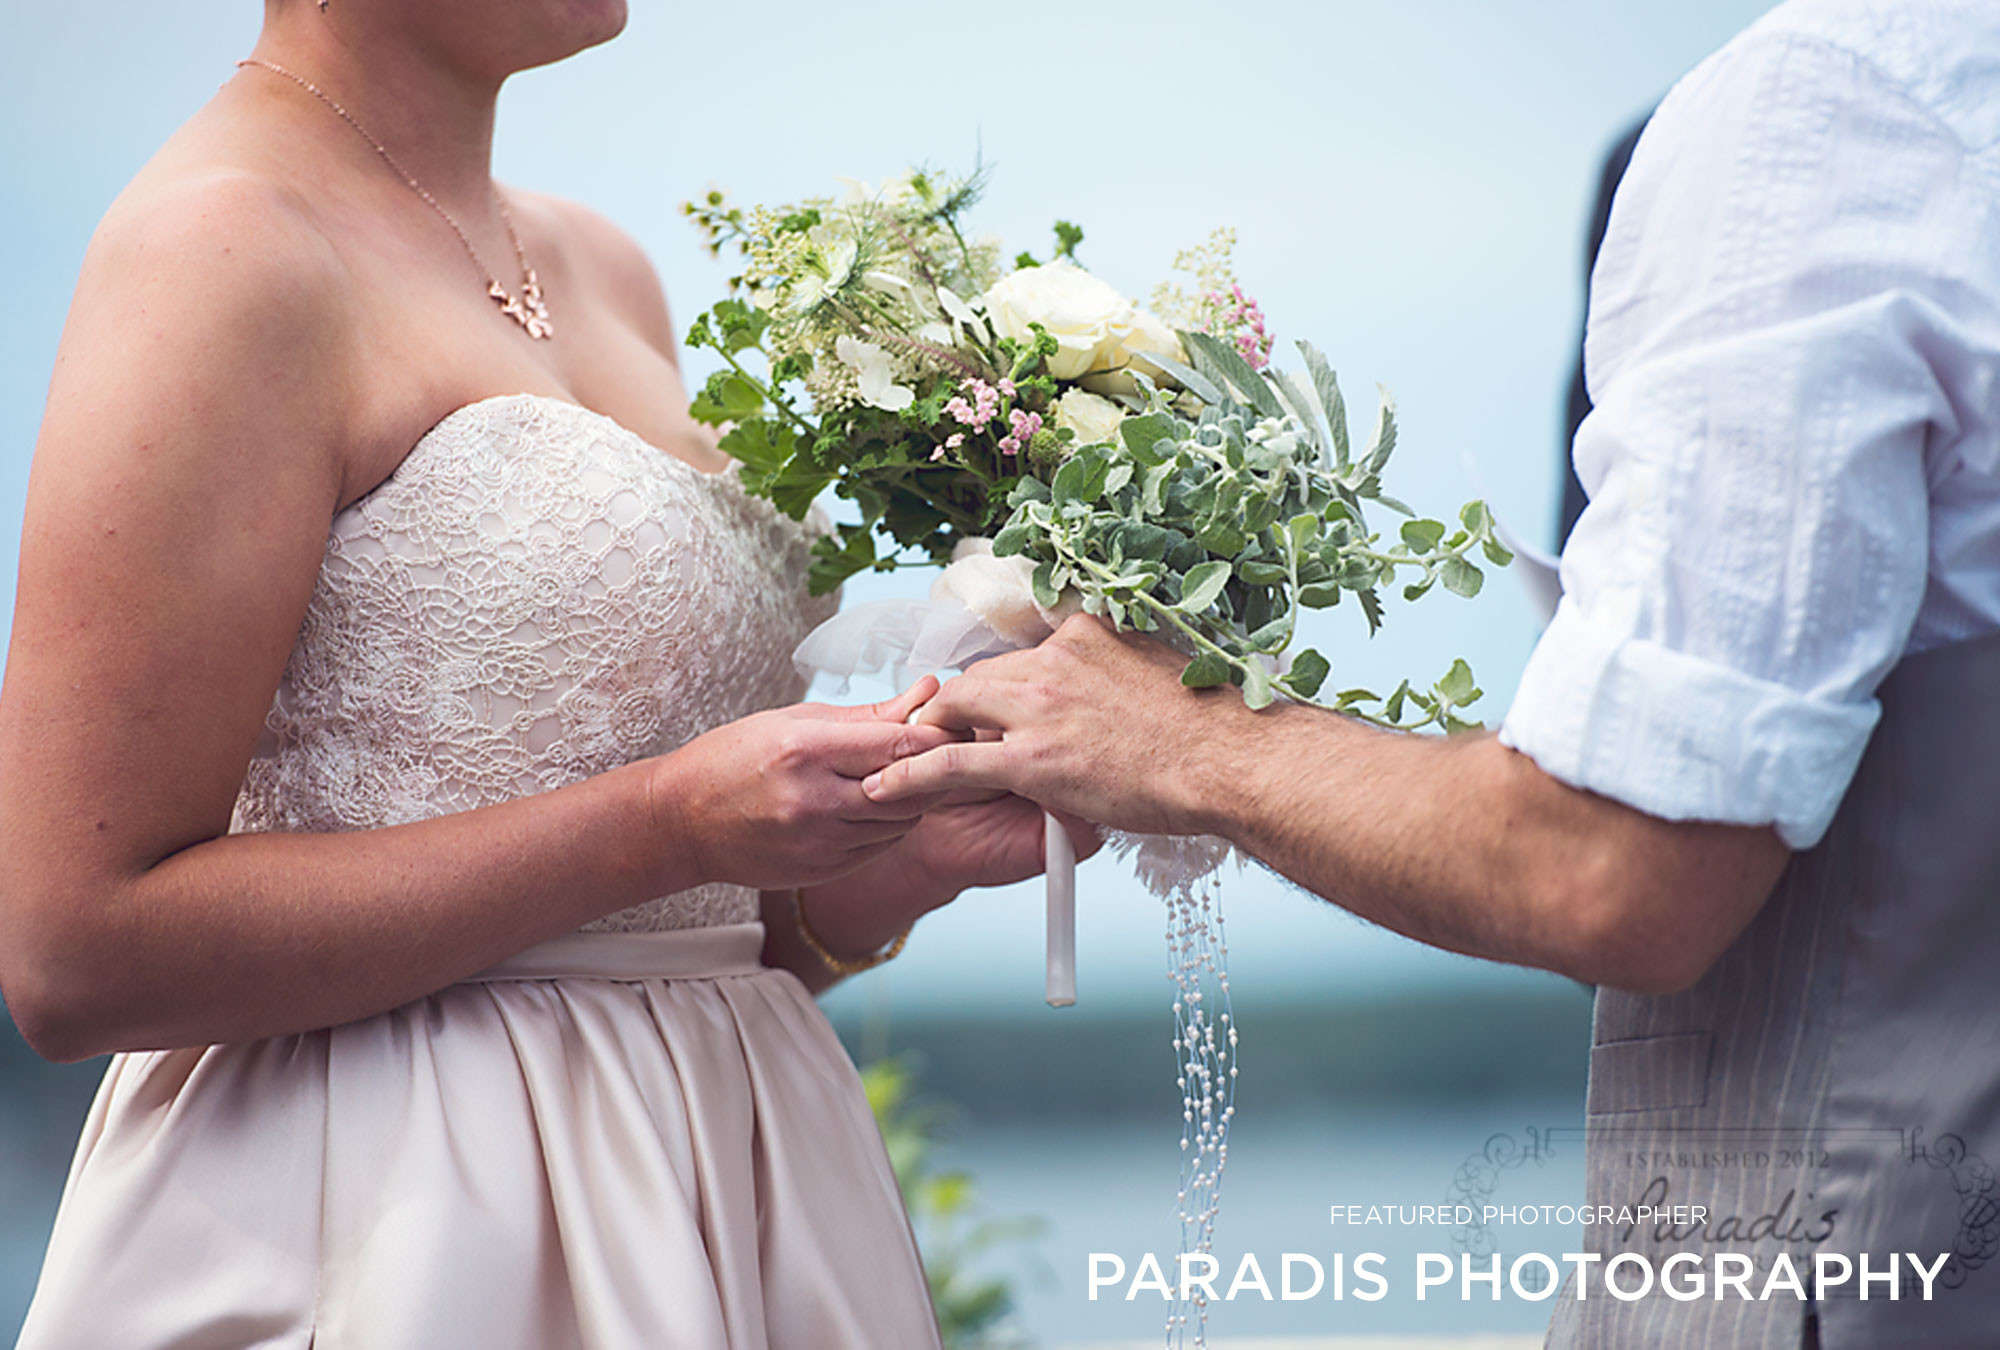 Paradis Photography - Featured Photographer